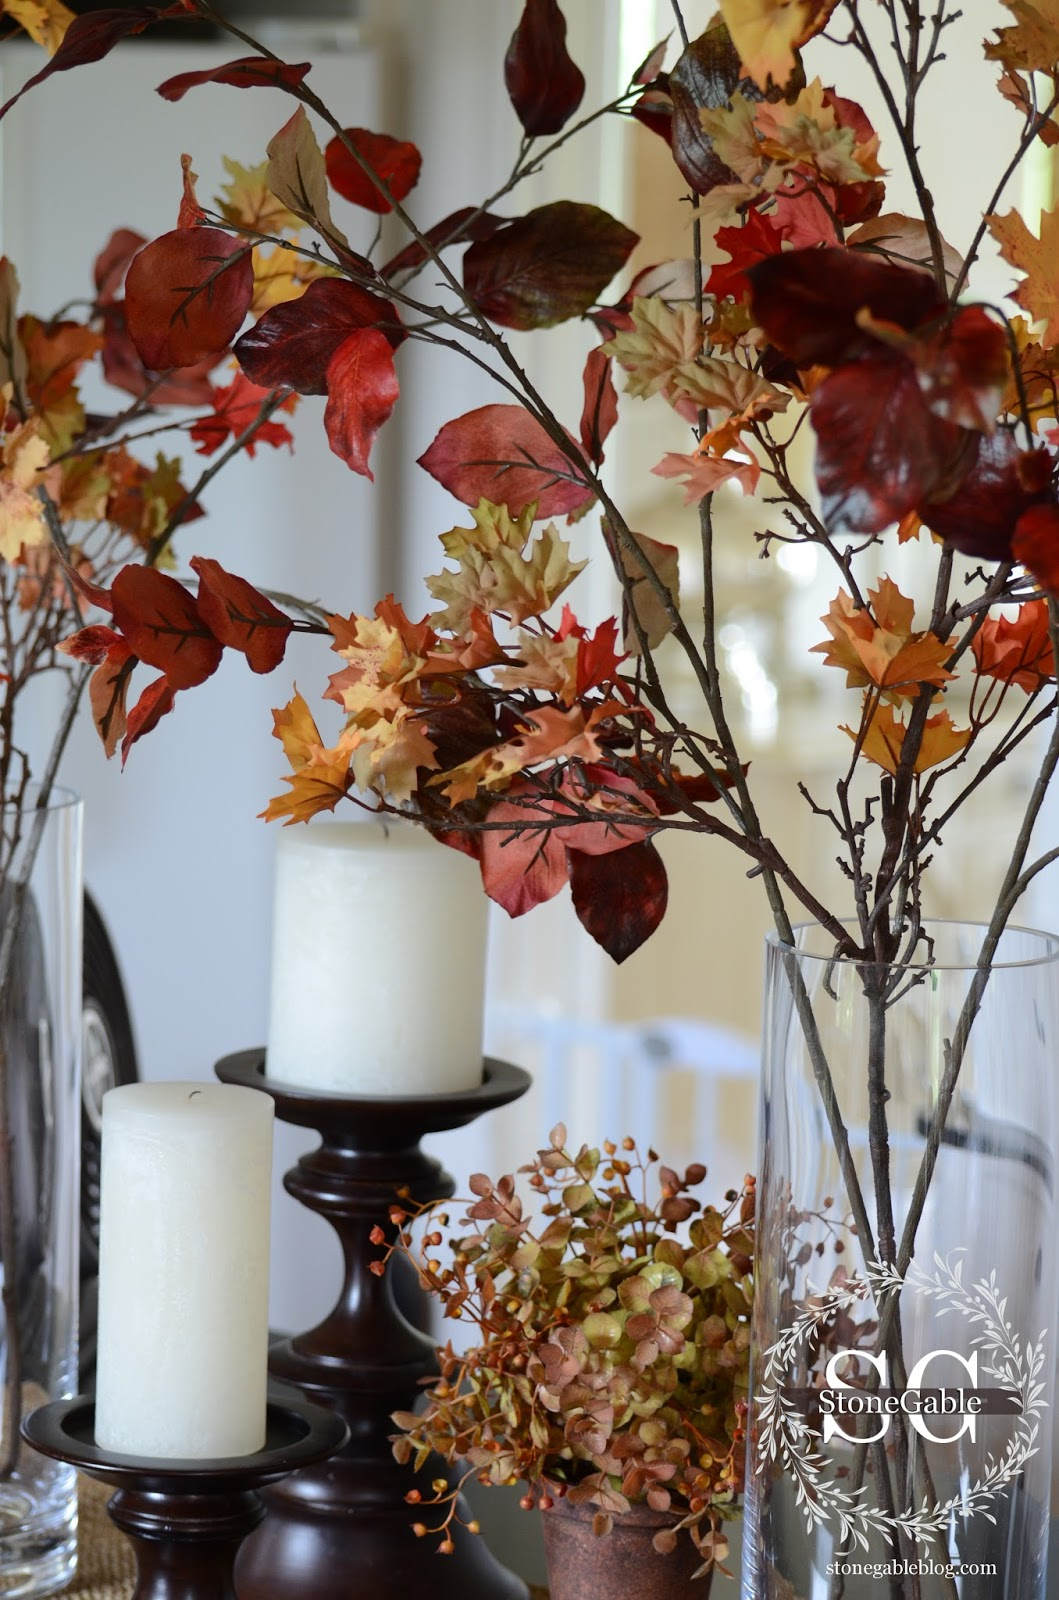 Fall Kitchen Decorating All About The Details Kitchen Home Tour Stonegable